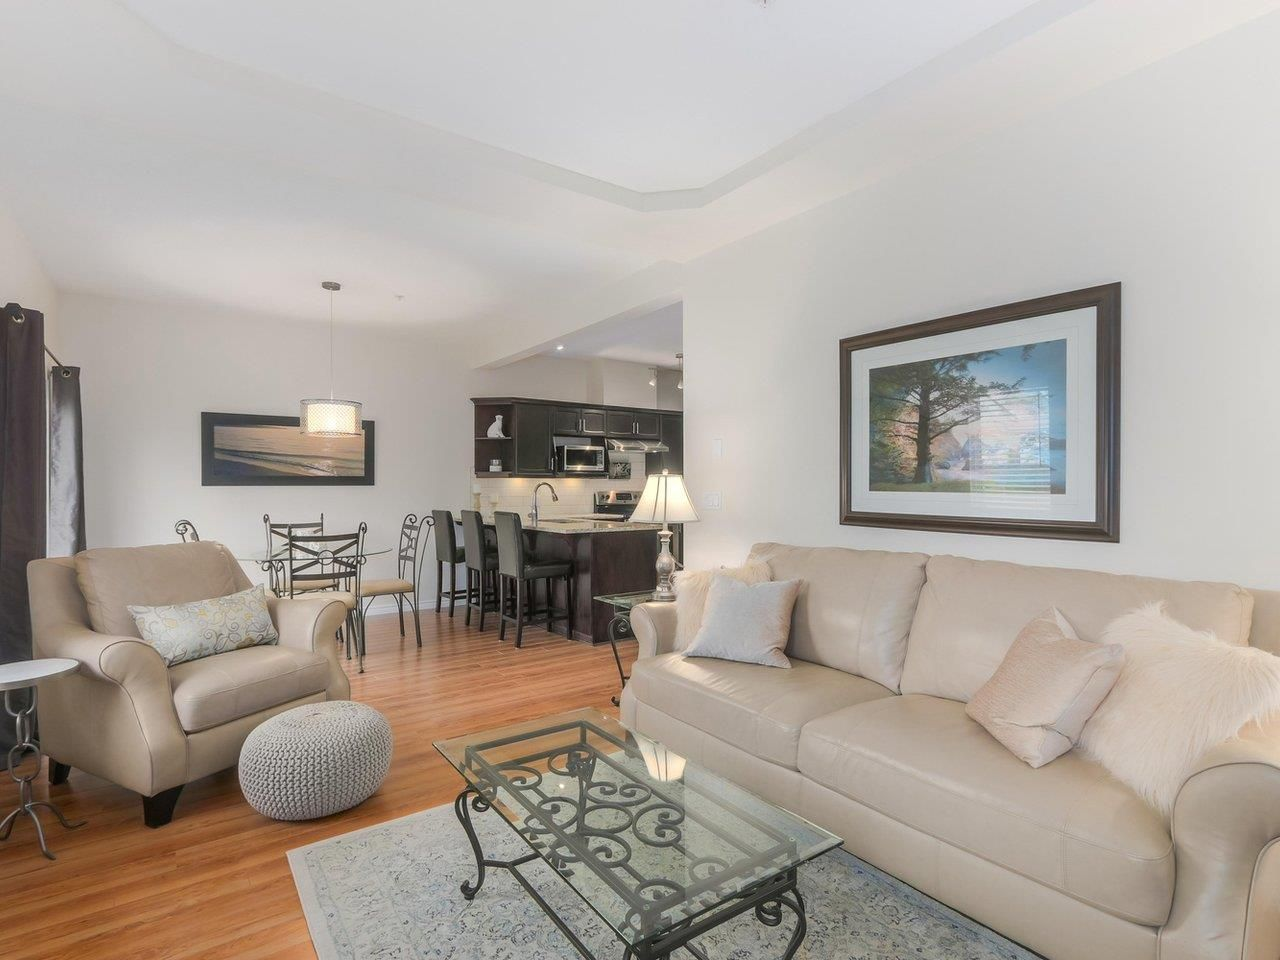 """Photo 11: Photos: 21 998 RIVERSIDE Drive in Port Coquitlam: Riverwood Townhouse for sale in """"PARKSIDE PLACE"""" : MLS®# R2371728"""